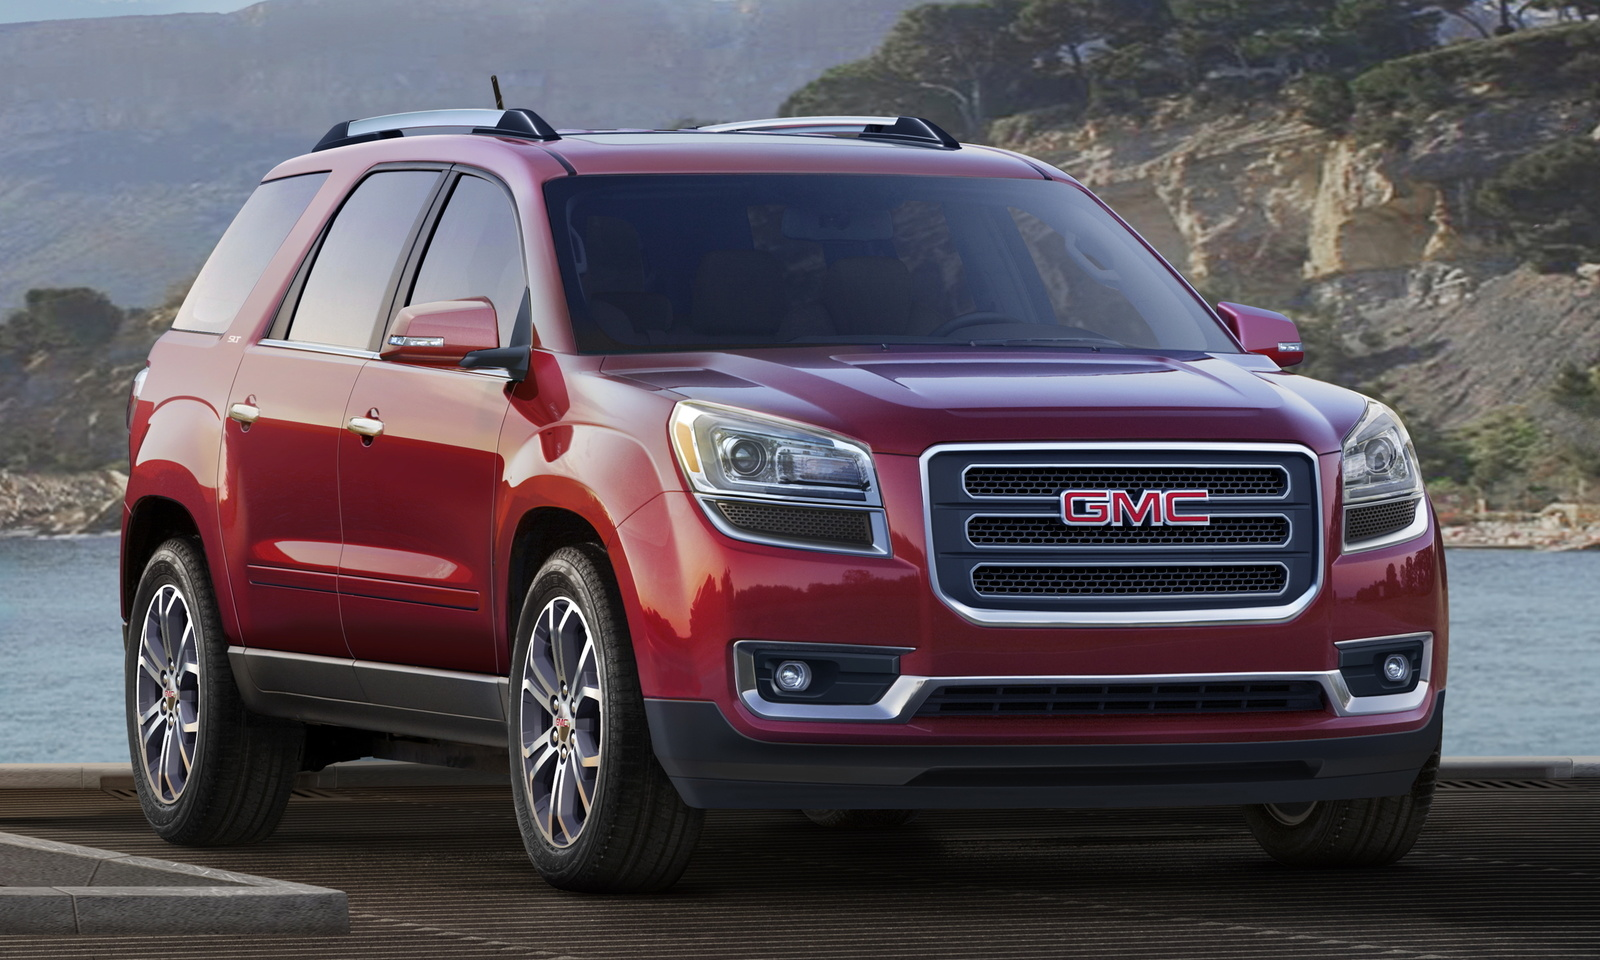 Gmc Acadia Denali For Sale >> 2016 Gmc Acadia Overview Cargurus